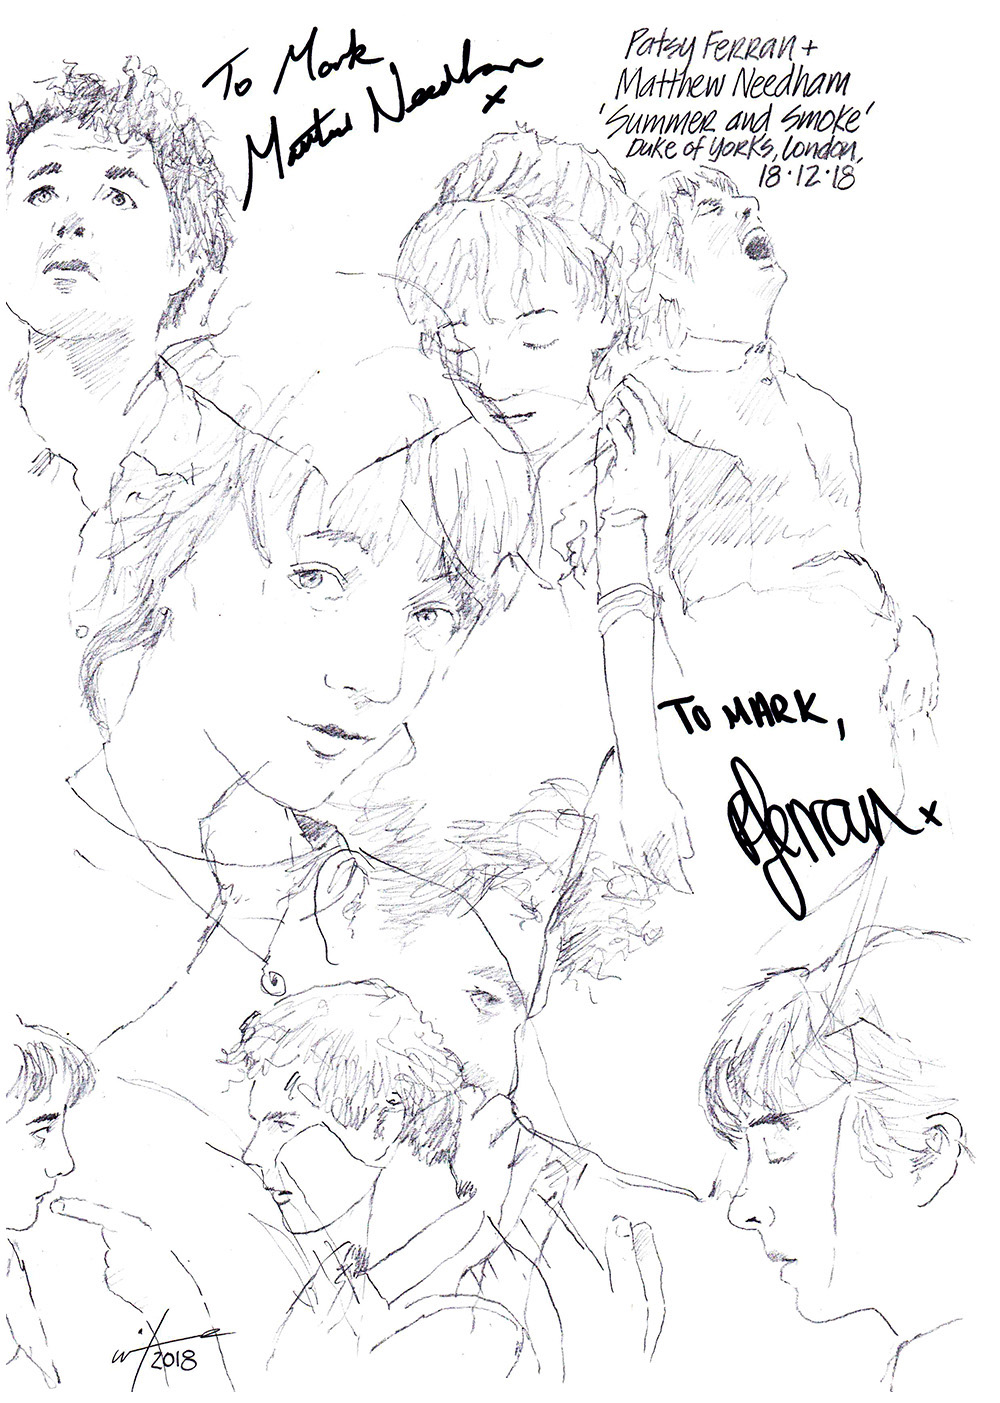 Autographed drawing of Patsy Ferran and Matthew Needham in Summer and Smoke at the Duke of York's Theatre on London's West End